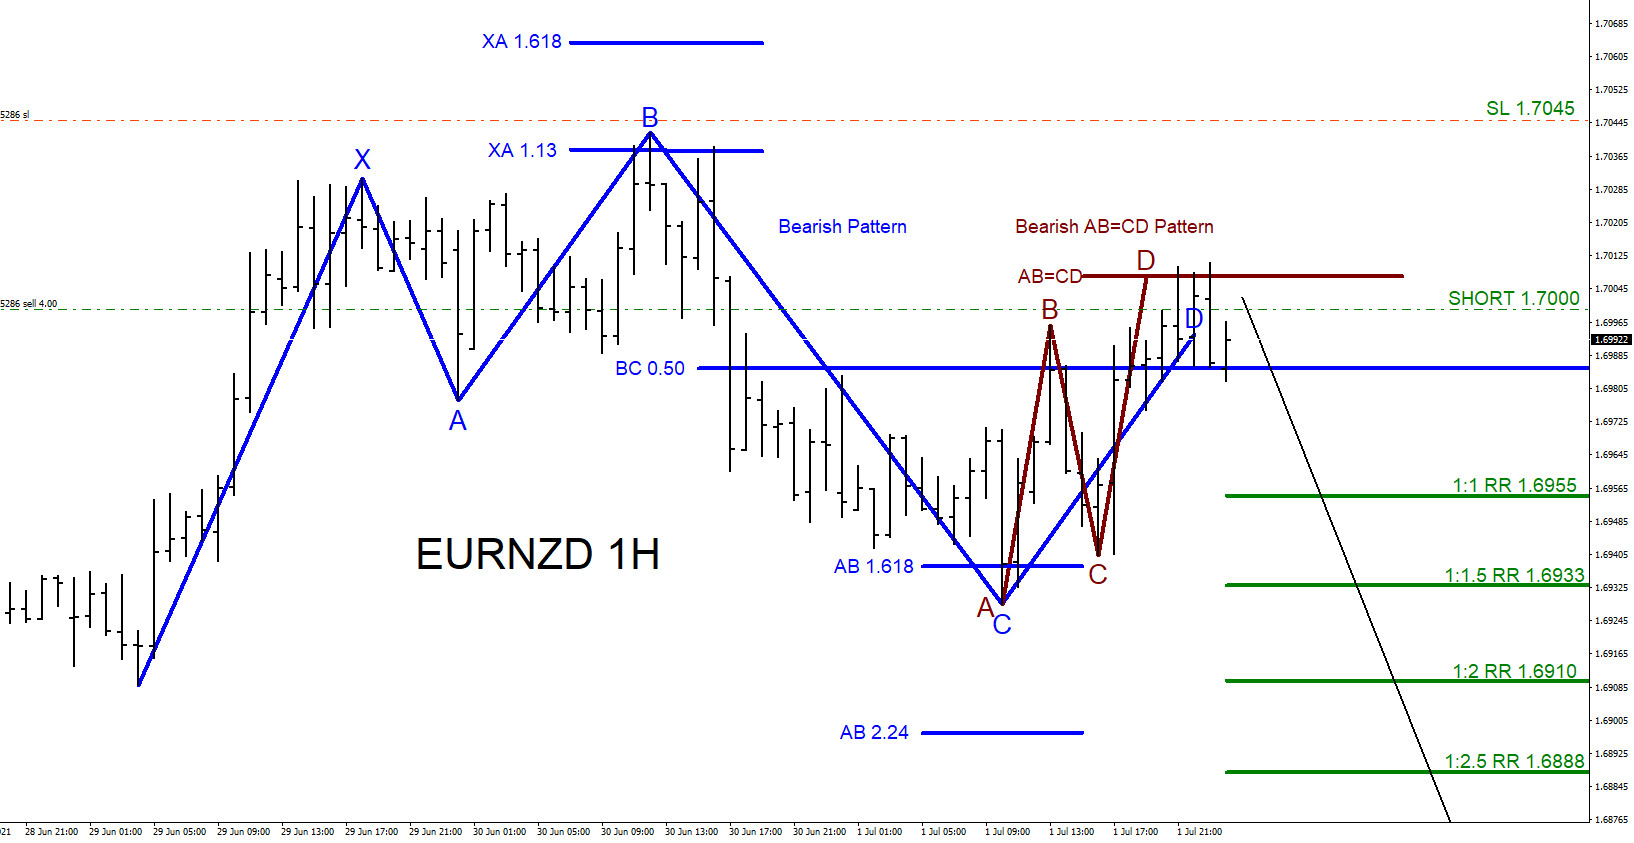 EURNZD : Tracking and Trading the Move Lower